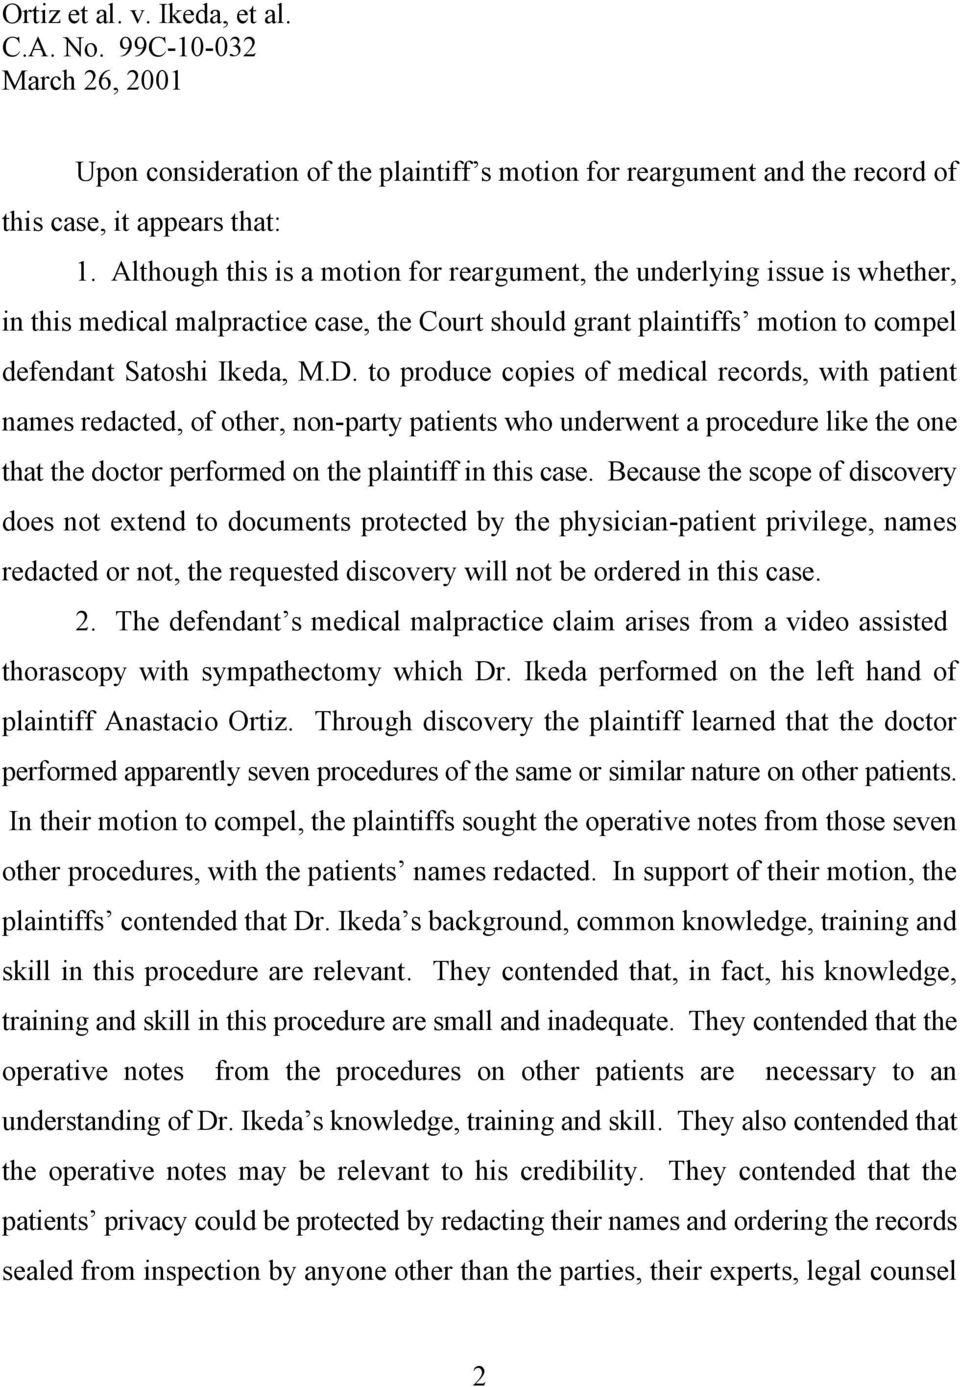 to produce copies of medical records, with patient names redacted, of other, non-party patients who underwent a procedure like the one that the doctor performed on the plaintiff in this case.